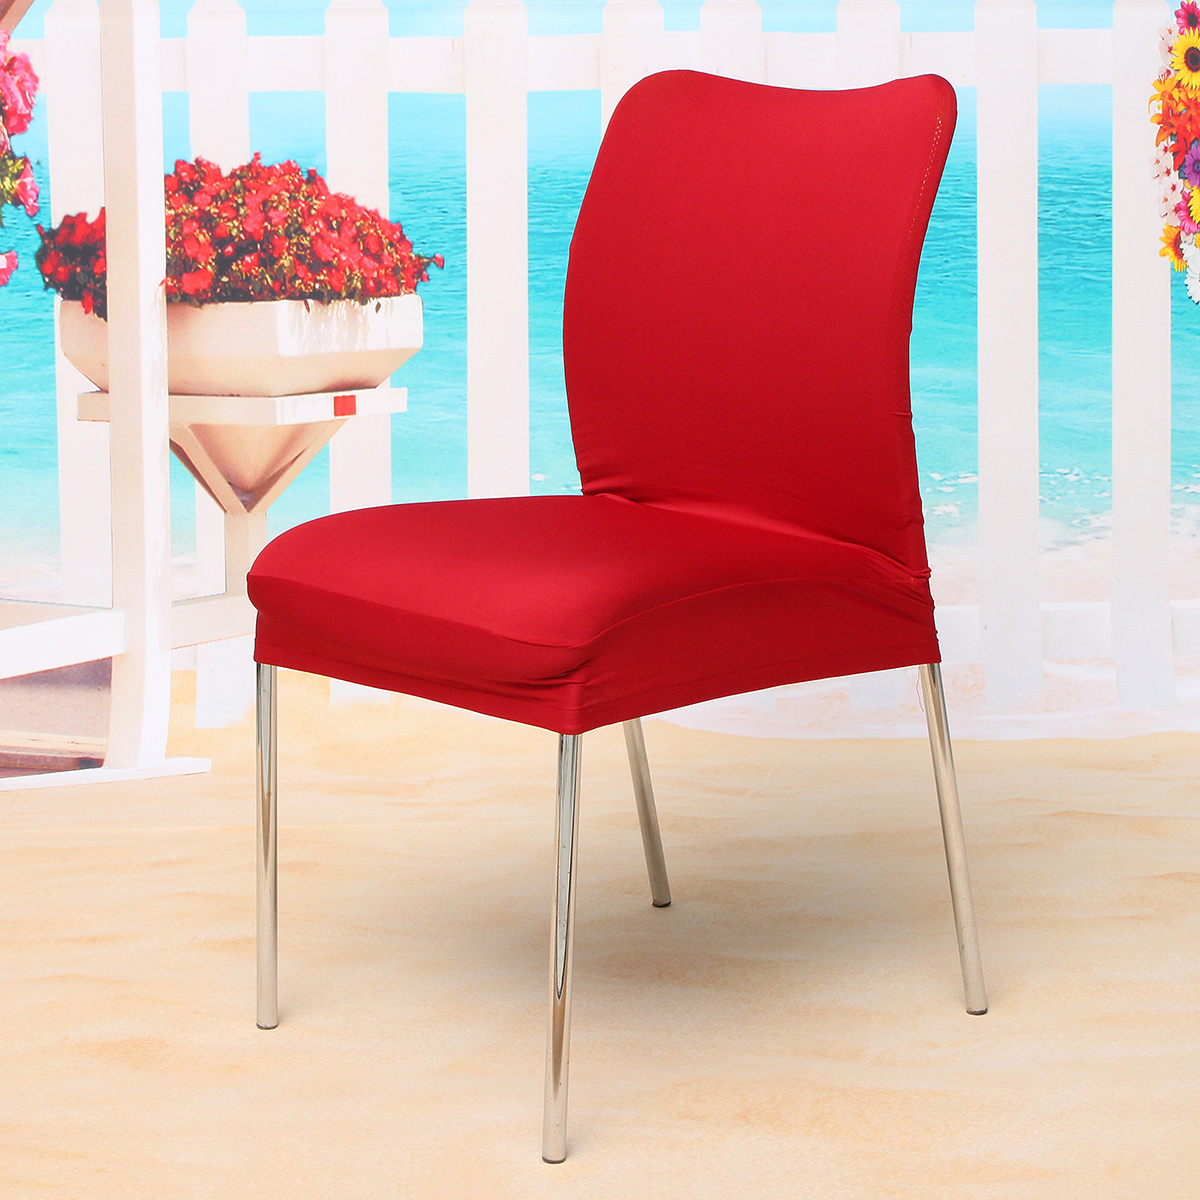 Stretch Soft Stool Seat Chair Cover Removable Dining Room  : 4390fa5e 167e 4073 974e 00ff3b5425a4 from www.lazada.com.my size 1200 x 1200 jpeg 687kB